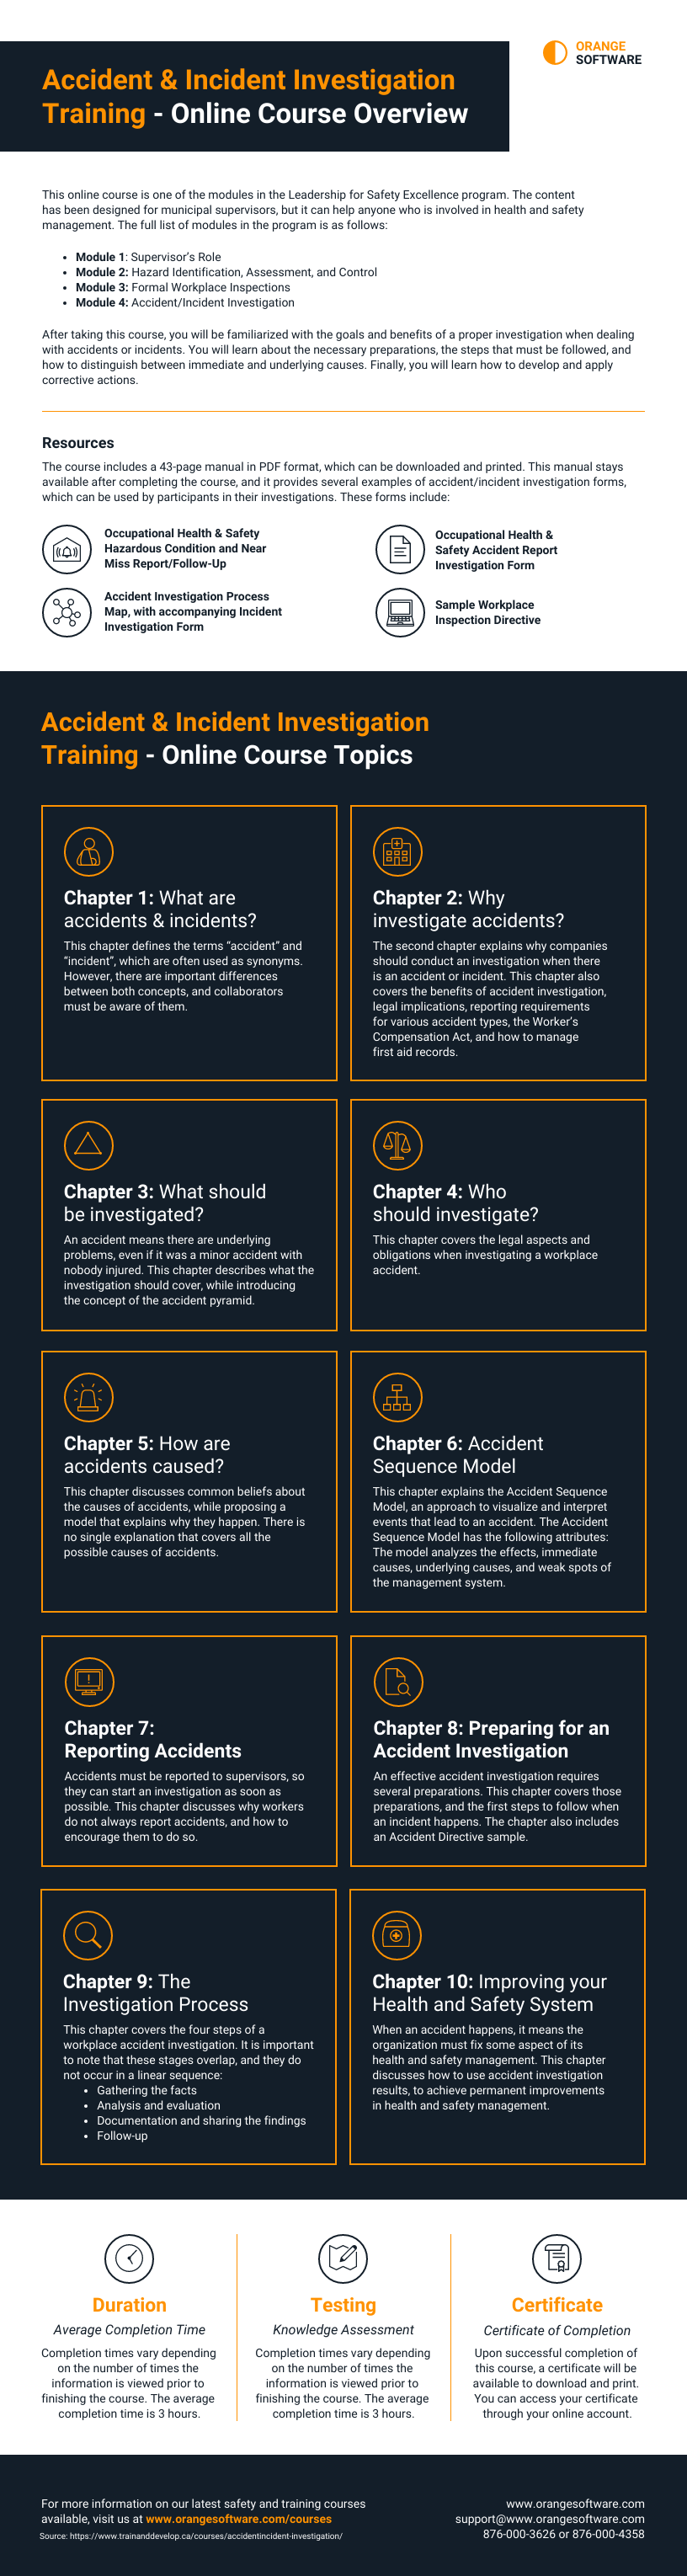 company infographic course overview